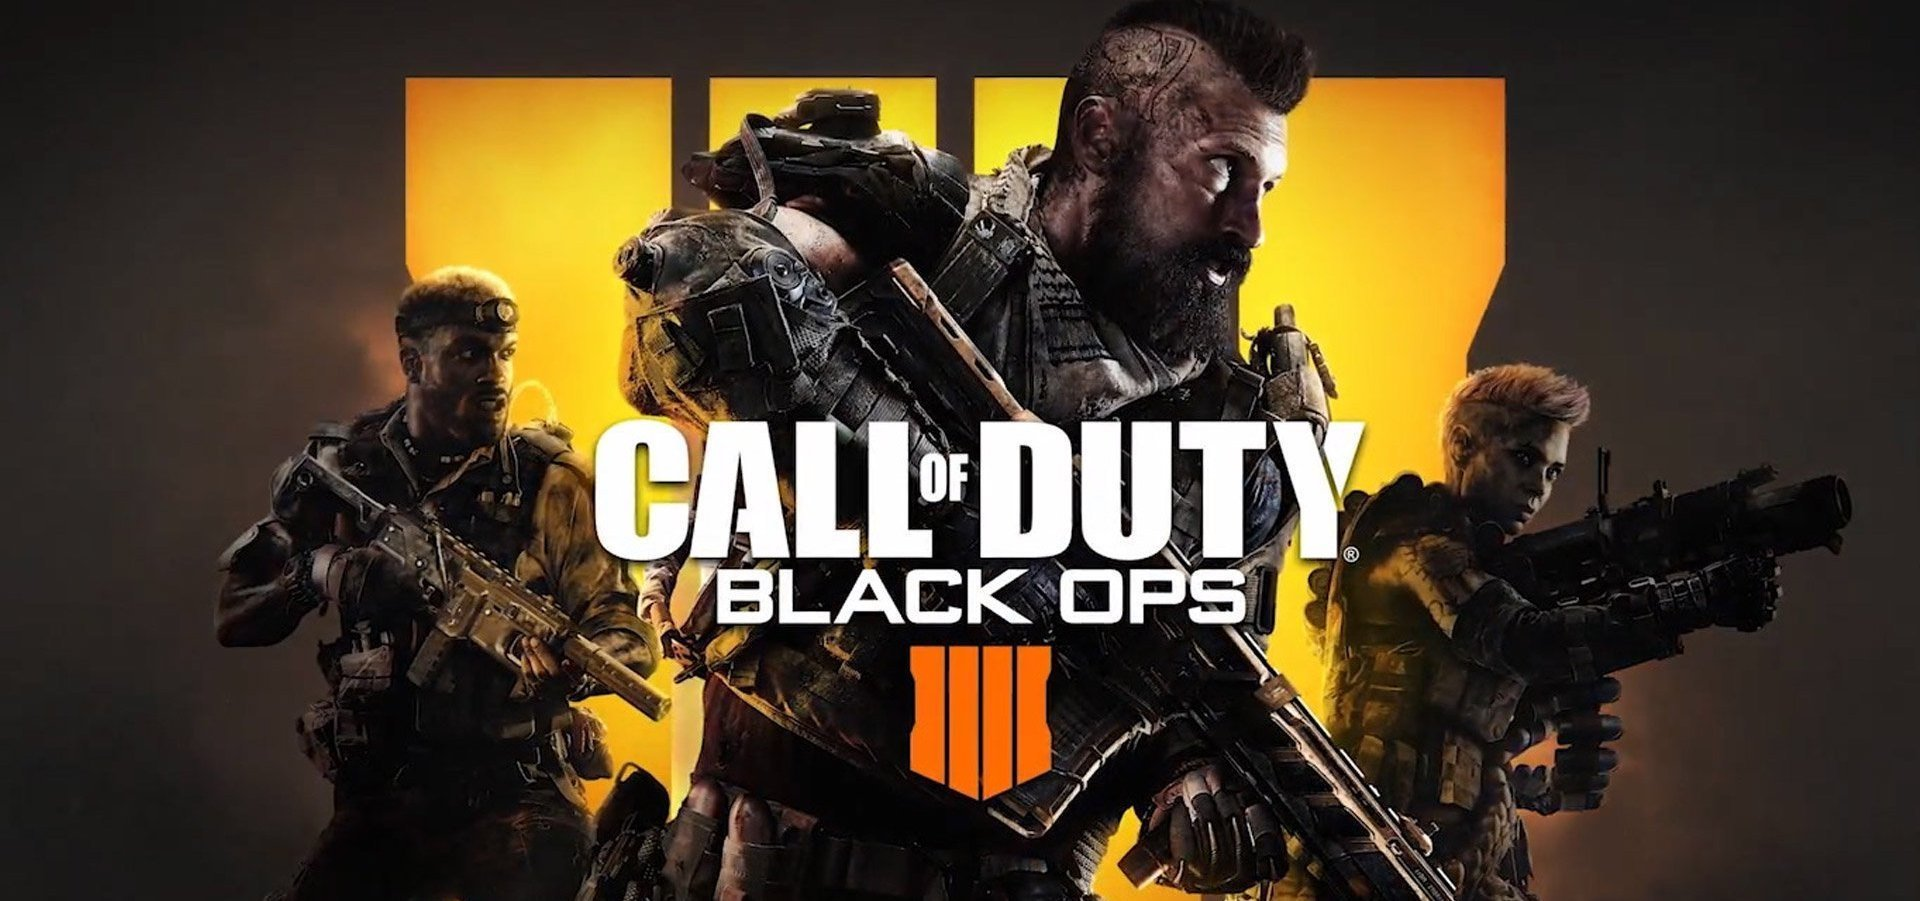 PC Gaming : Call of duty black ops 4